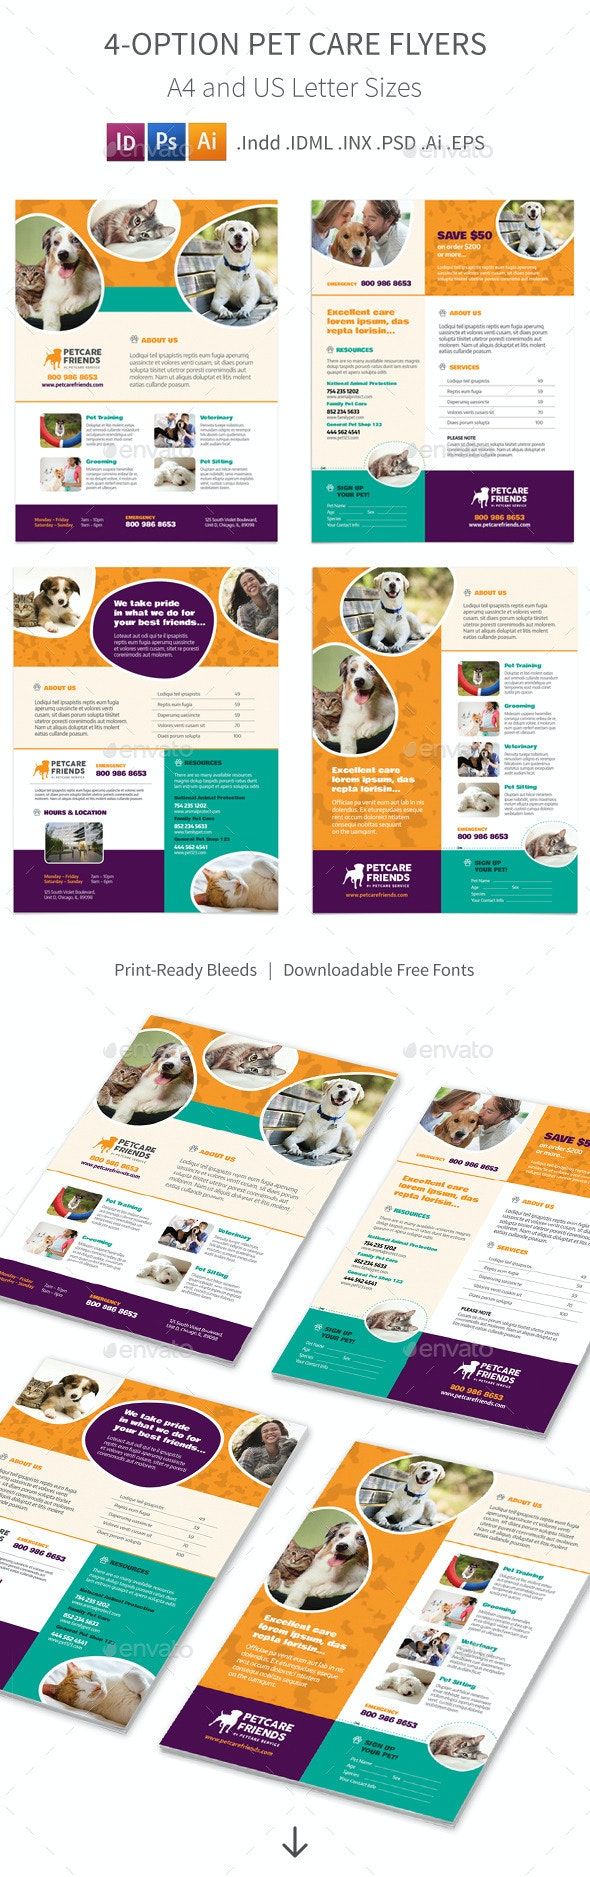 Pet Care Flyers – 4 Options - Corporate Flyers